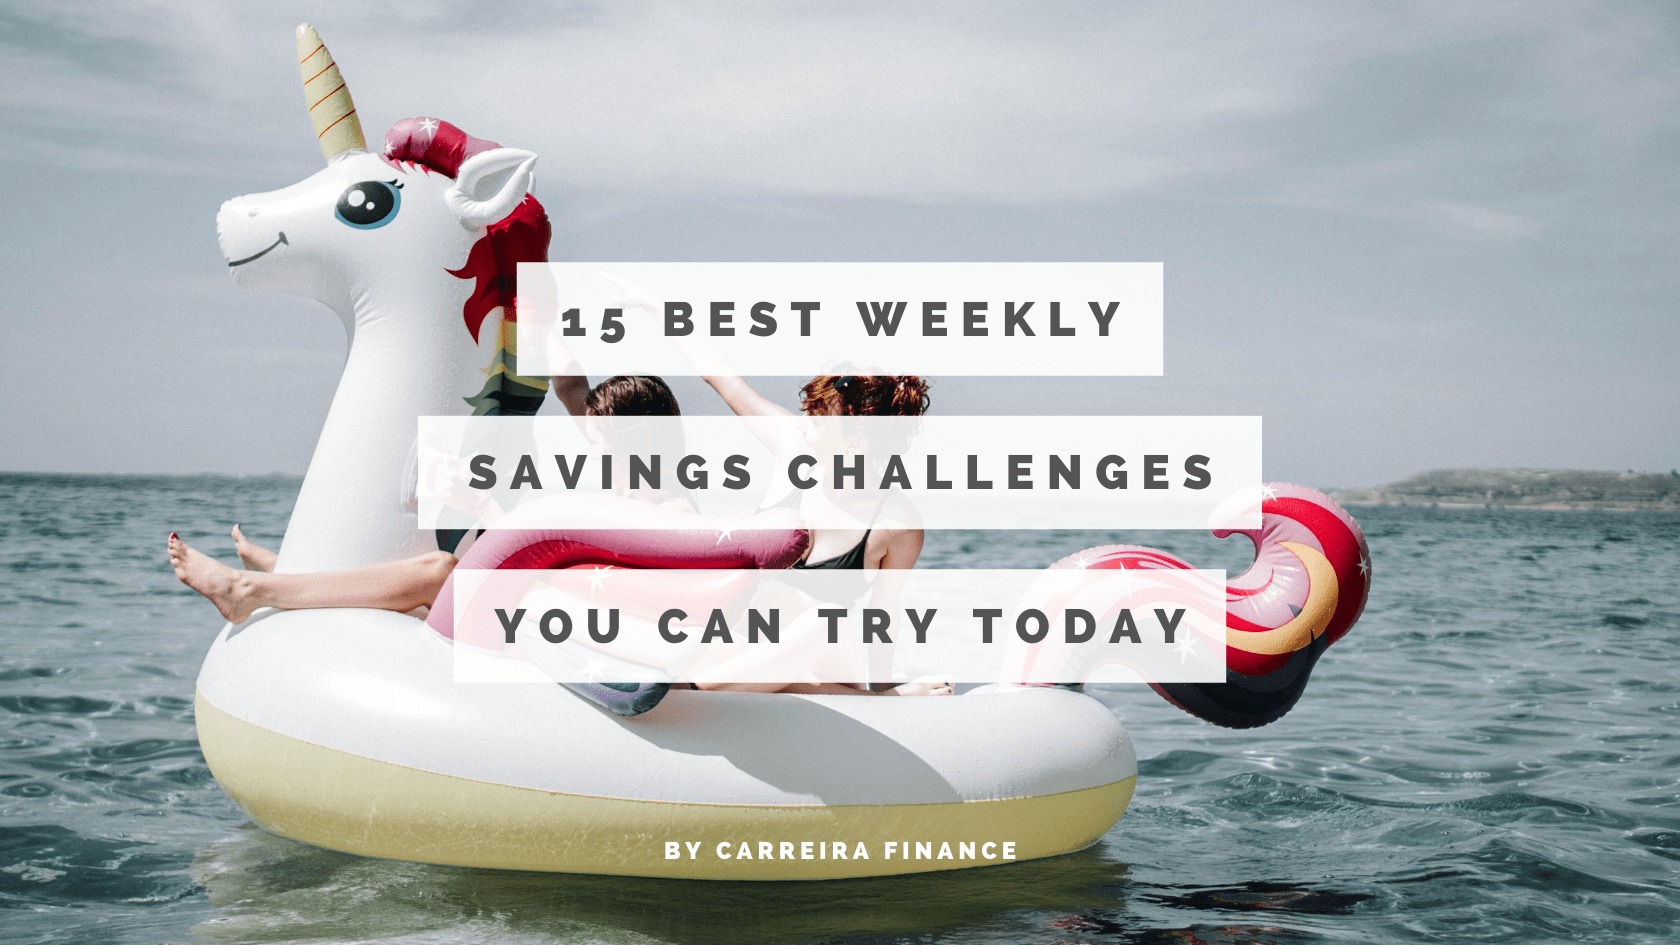 15 Best Weekly Savings Challenges You Can Try Today - Carreira Finance Coaching